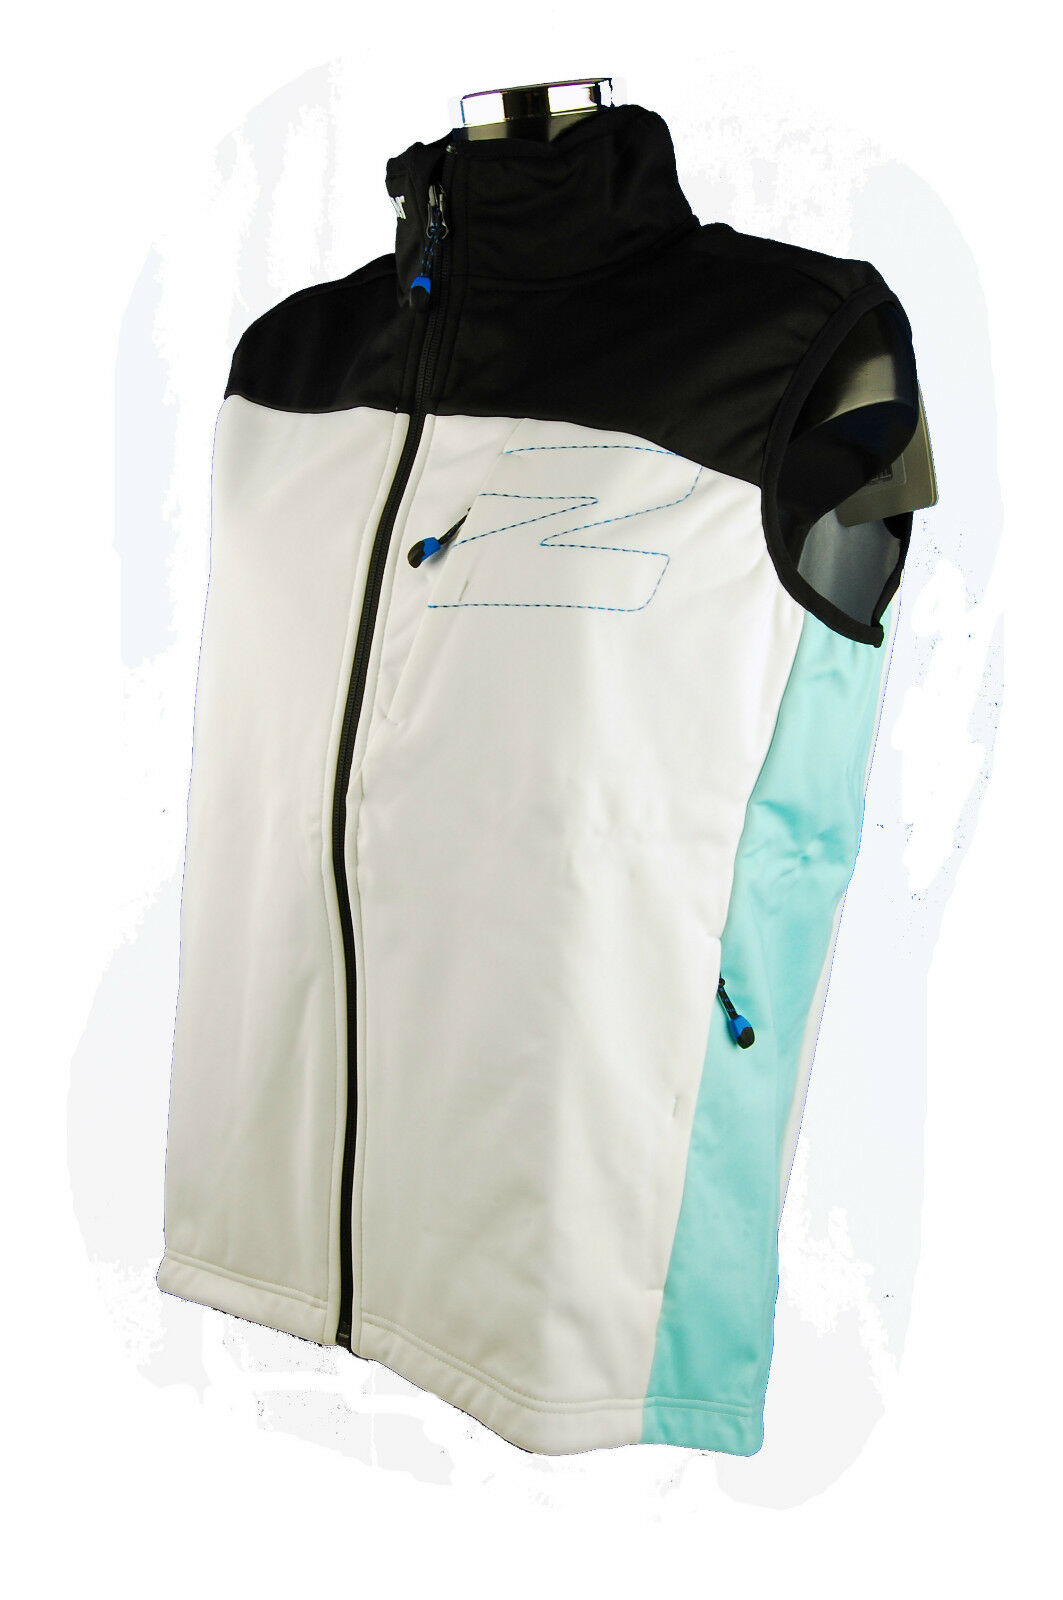 Ziener Race Softshell Vest Coat Gilet Team Wear Blau Weiß 01798 Größe M NEW